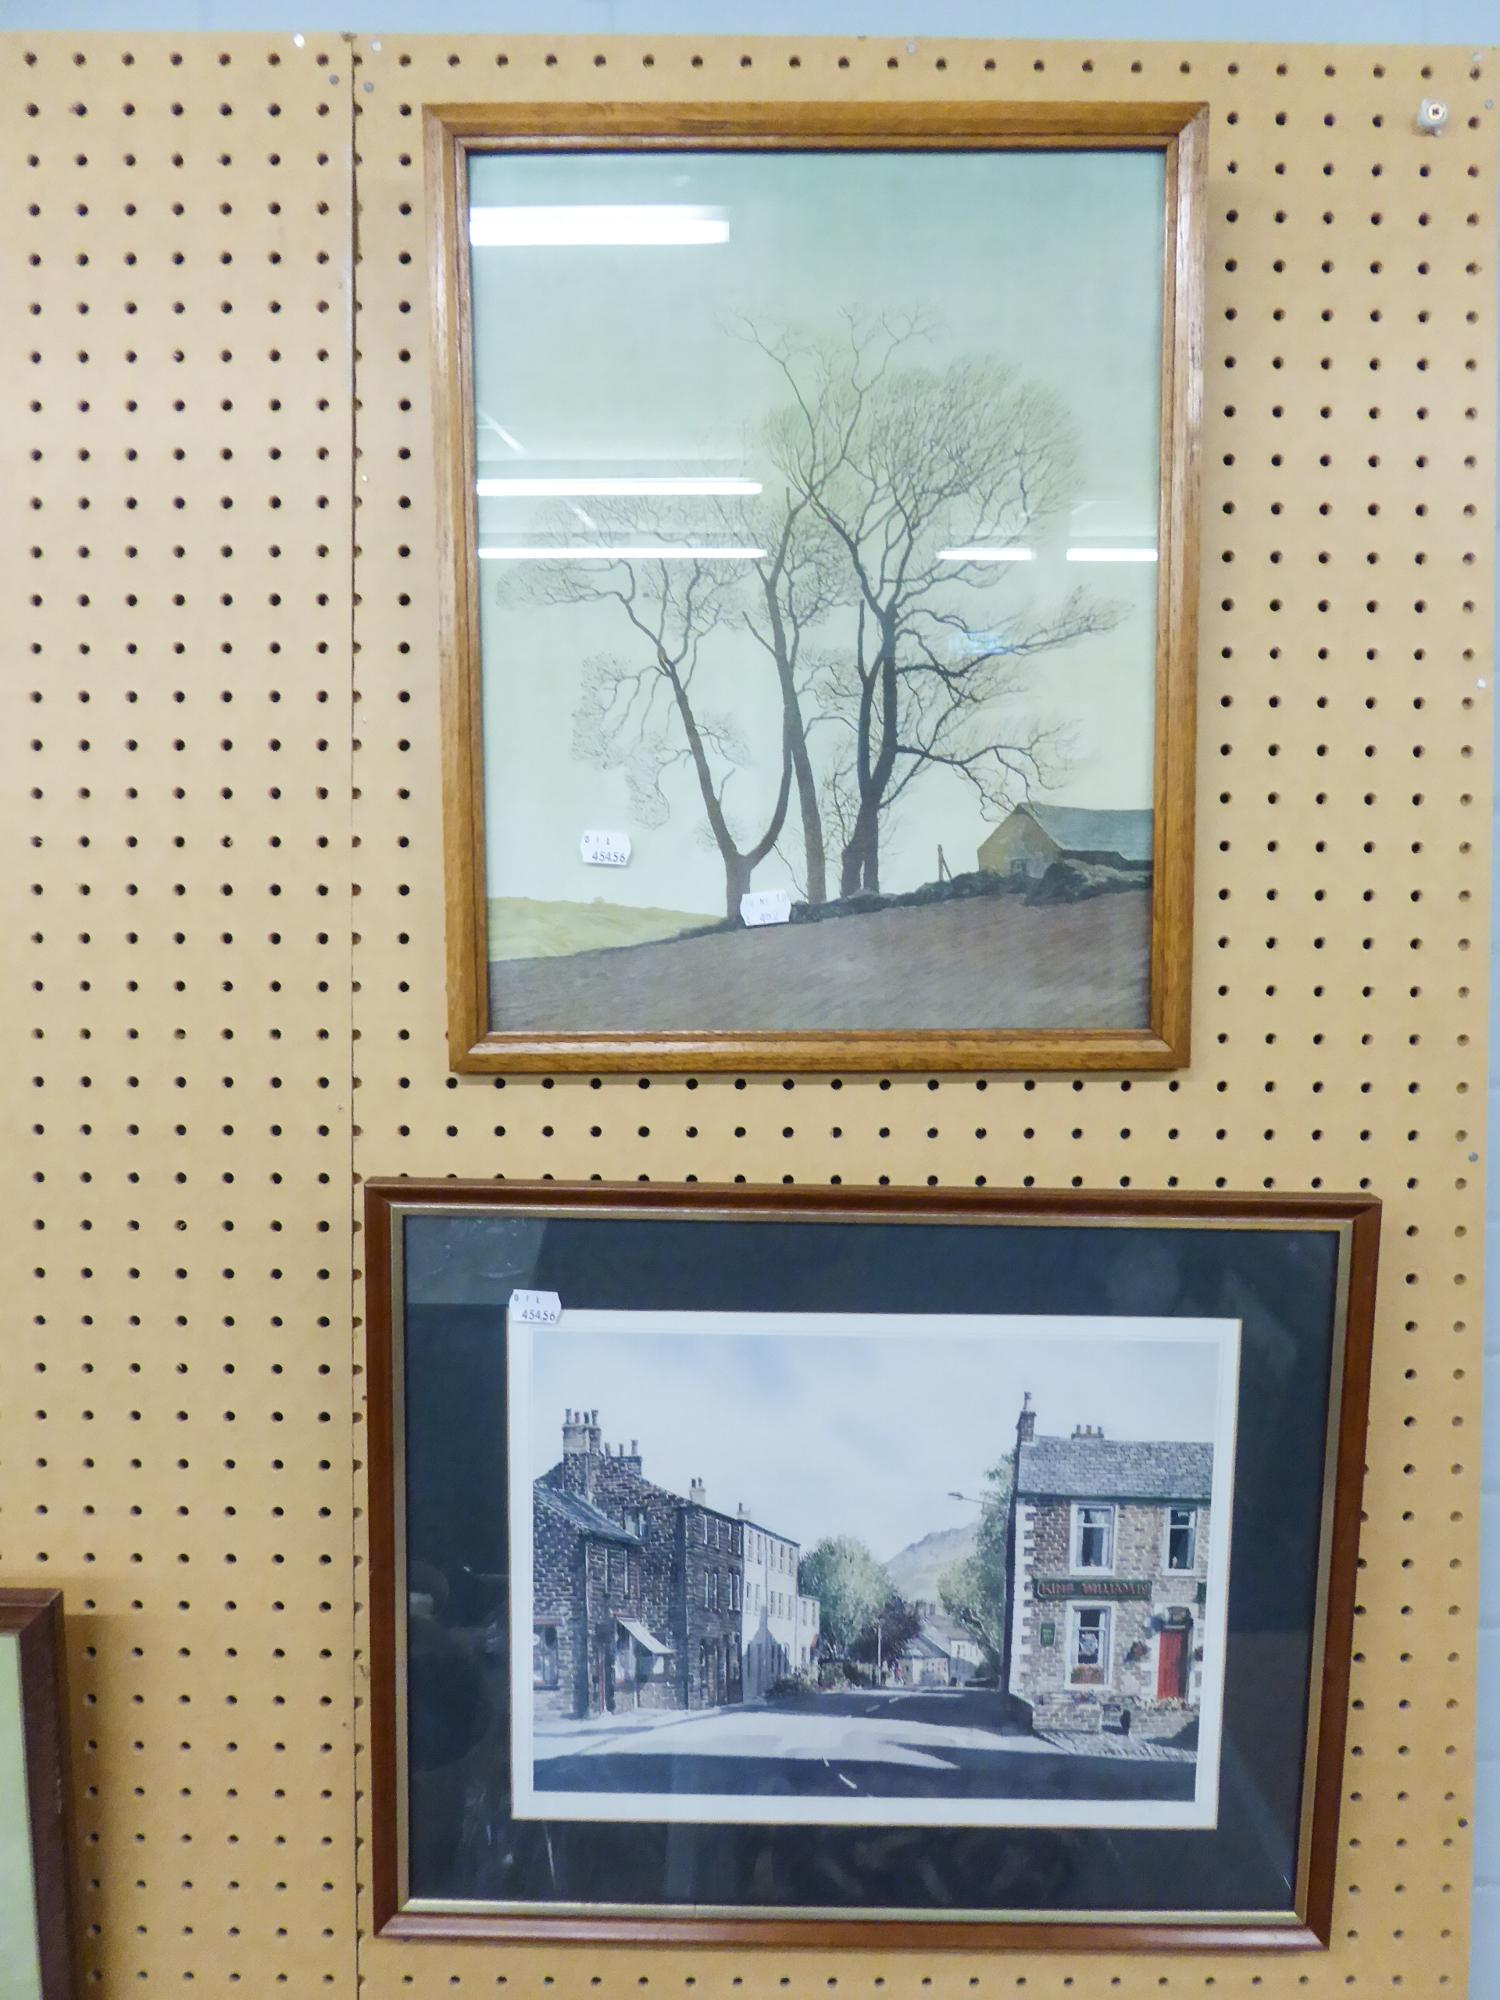 Lot 443 - TWO COLOURED PRINTS, FRAMED AND GLAZED, 'KING WILLIAM', 'J HOBSON' AND AN OTHER (2)